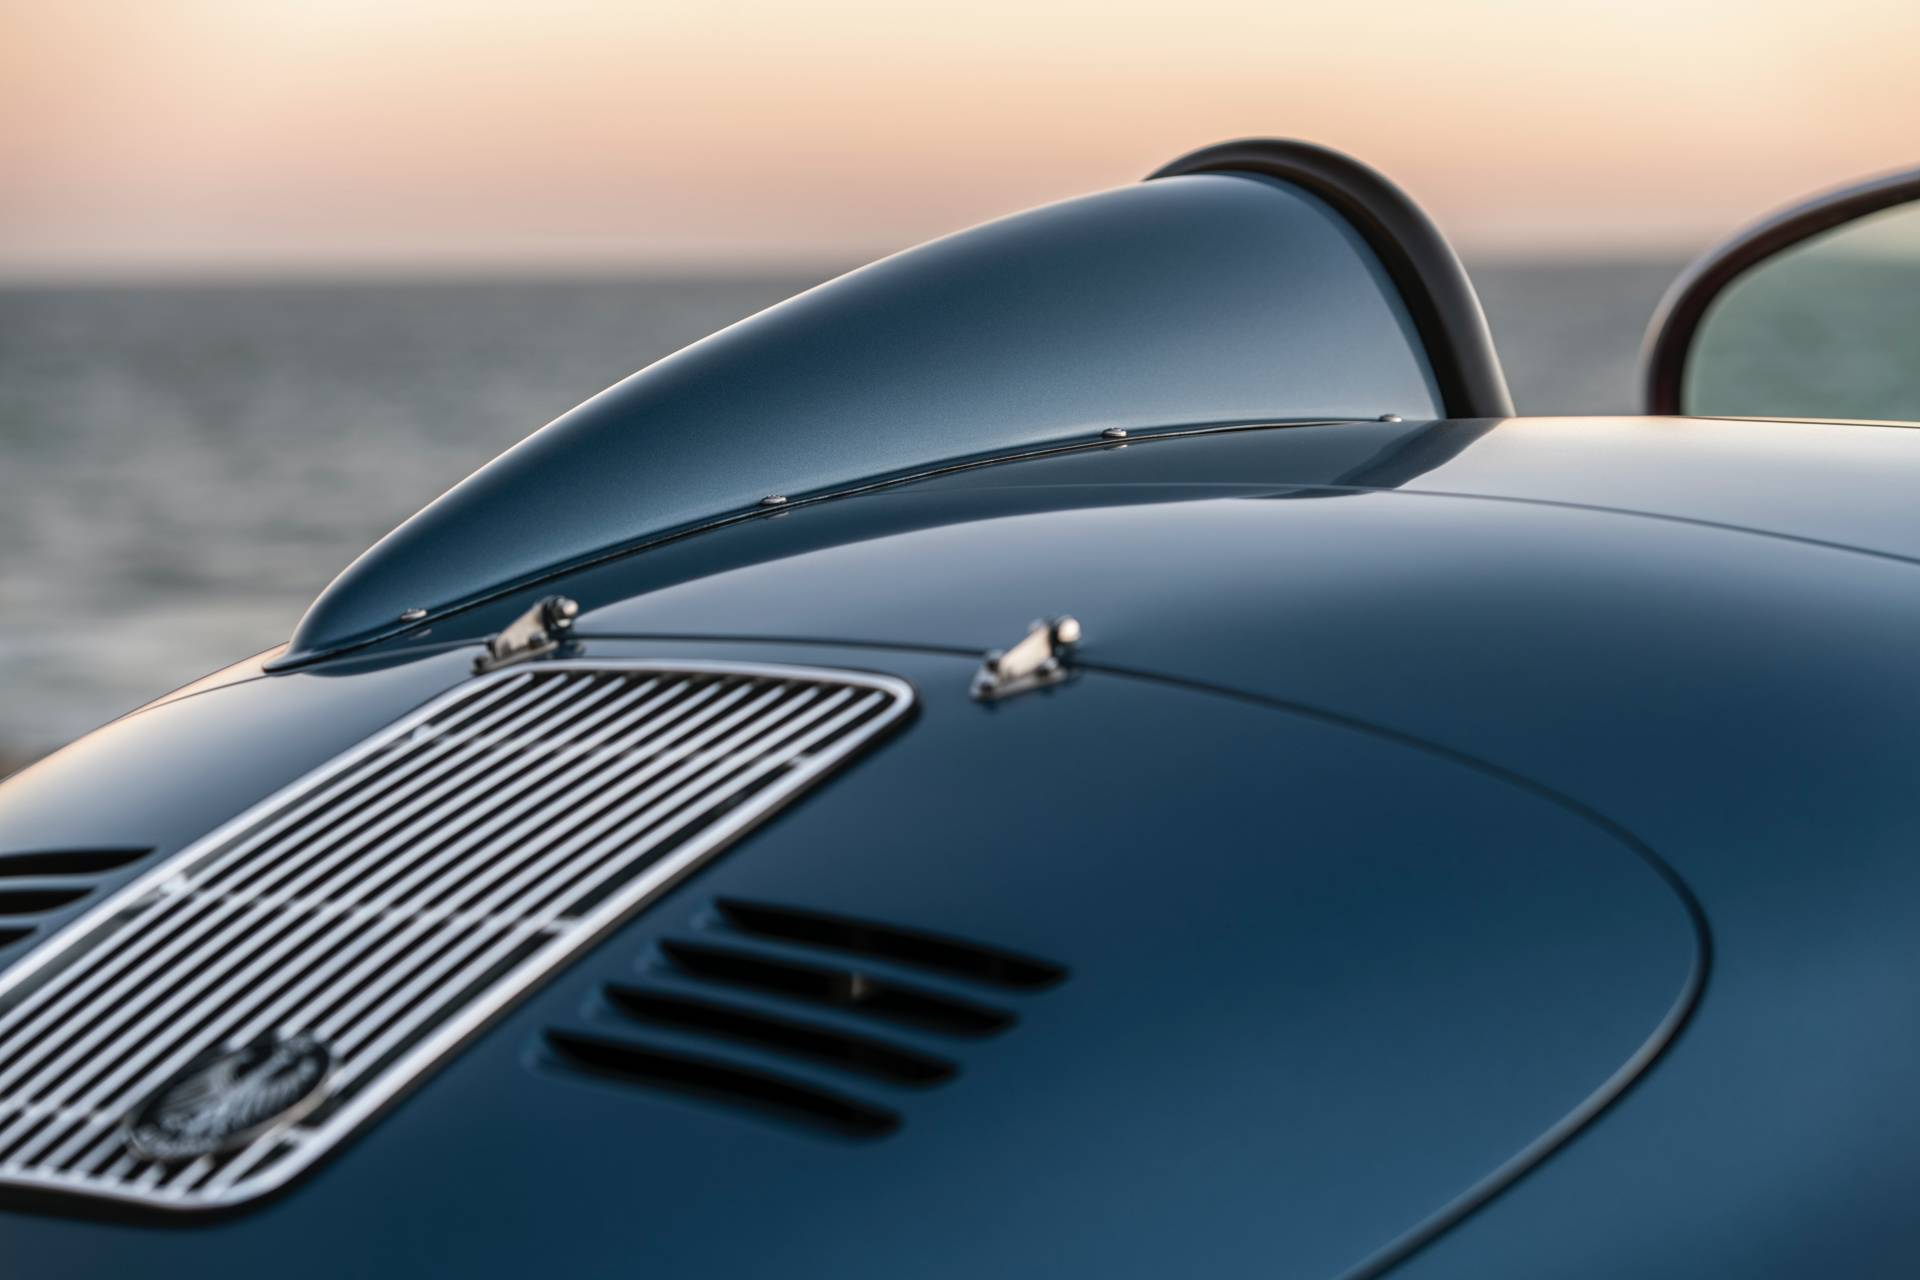 Porsche-356-Speedster-1959-Aquamarine-Transitional-By-Emory-Motorsport-14